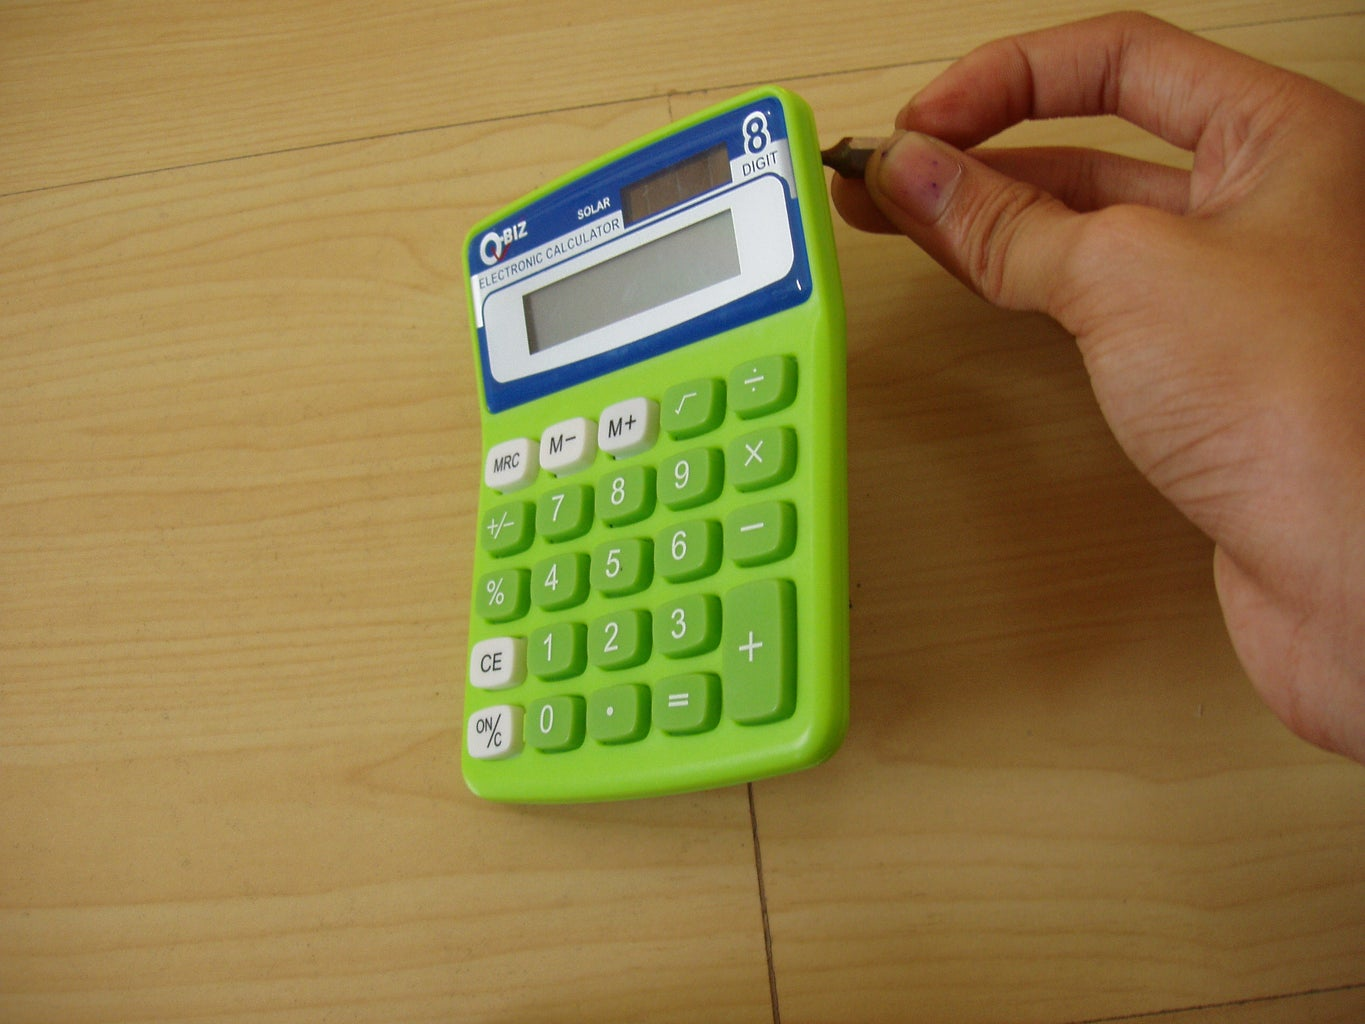 Disassembling the Calculator